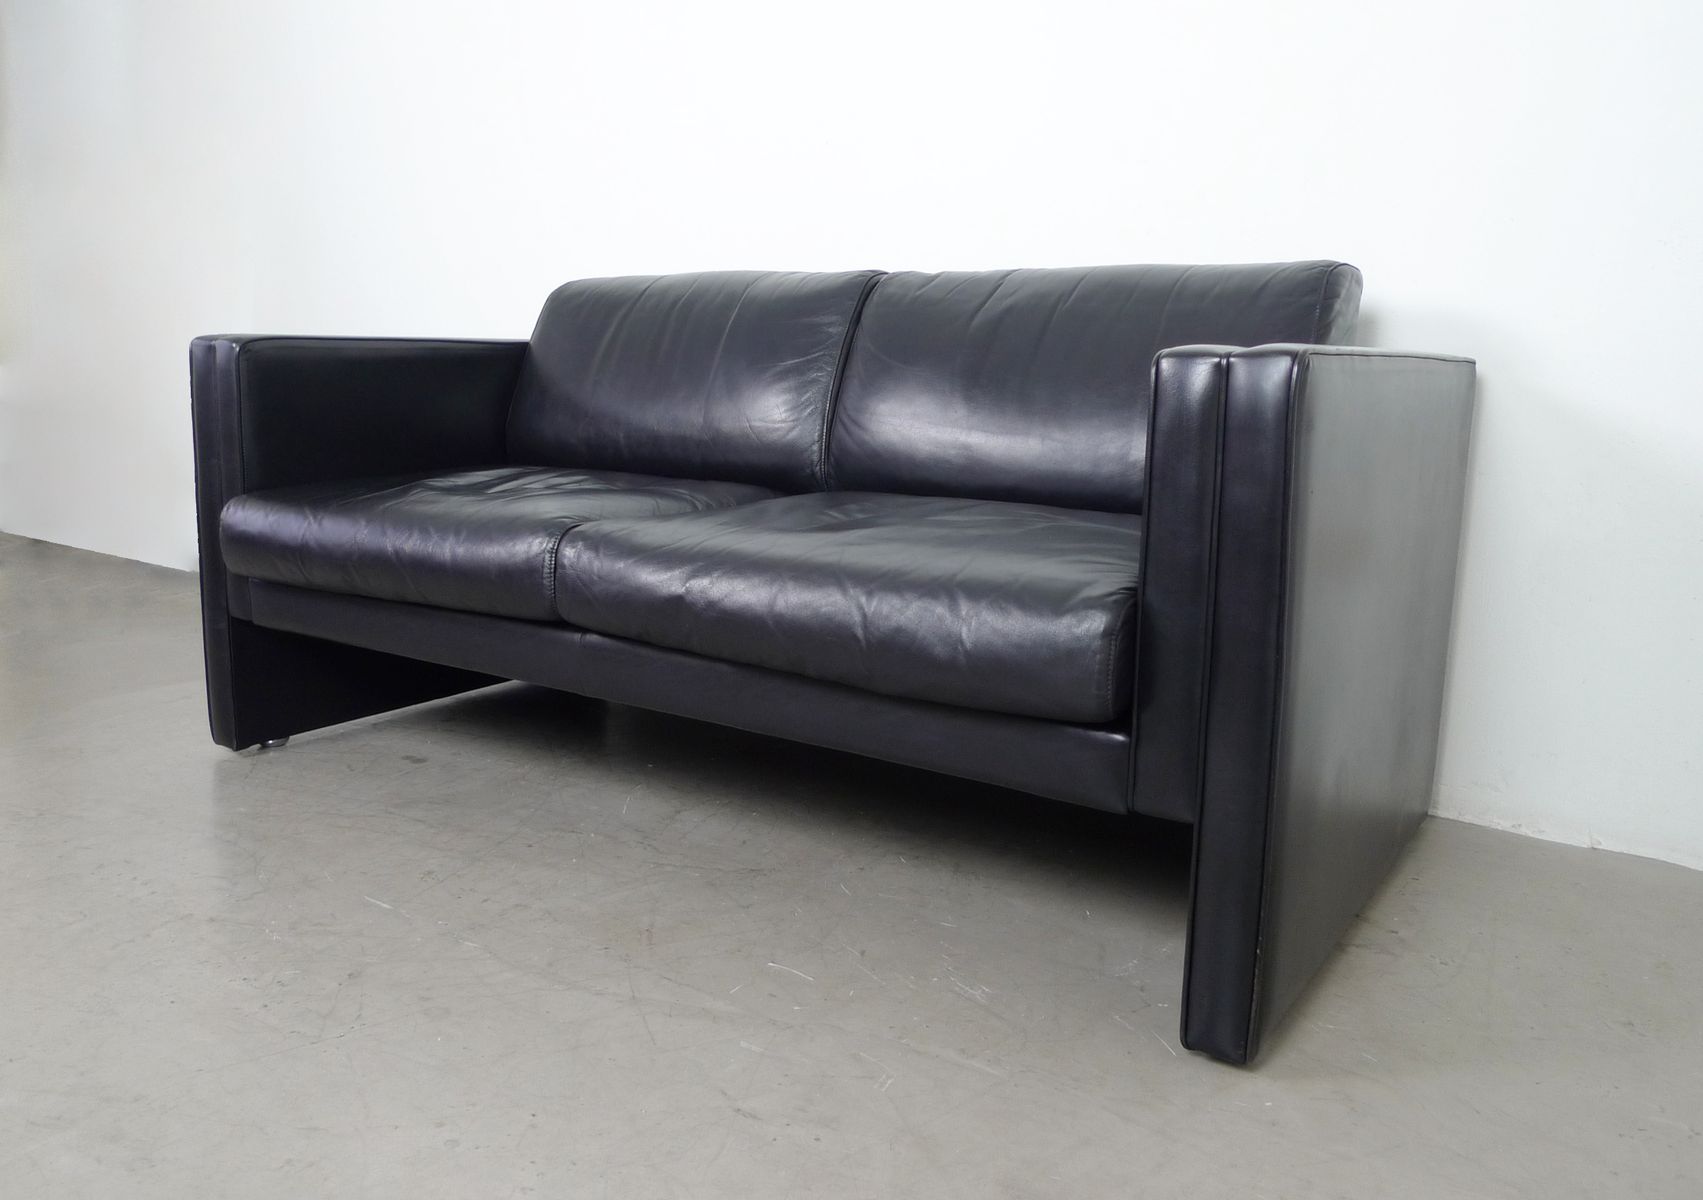 Leather Sofajürgen Lange For Walter Knoll, 1980S For Sale At Pamono Intended For Walter Leather Sofa Chairs (Image 5 of 20)